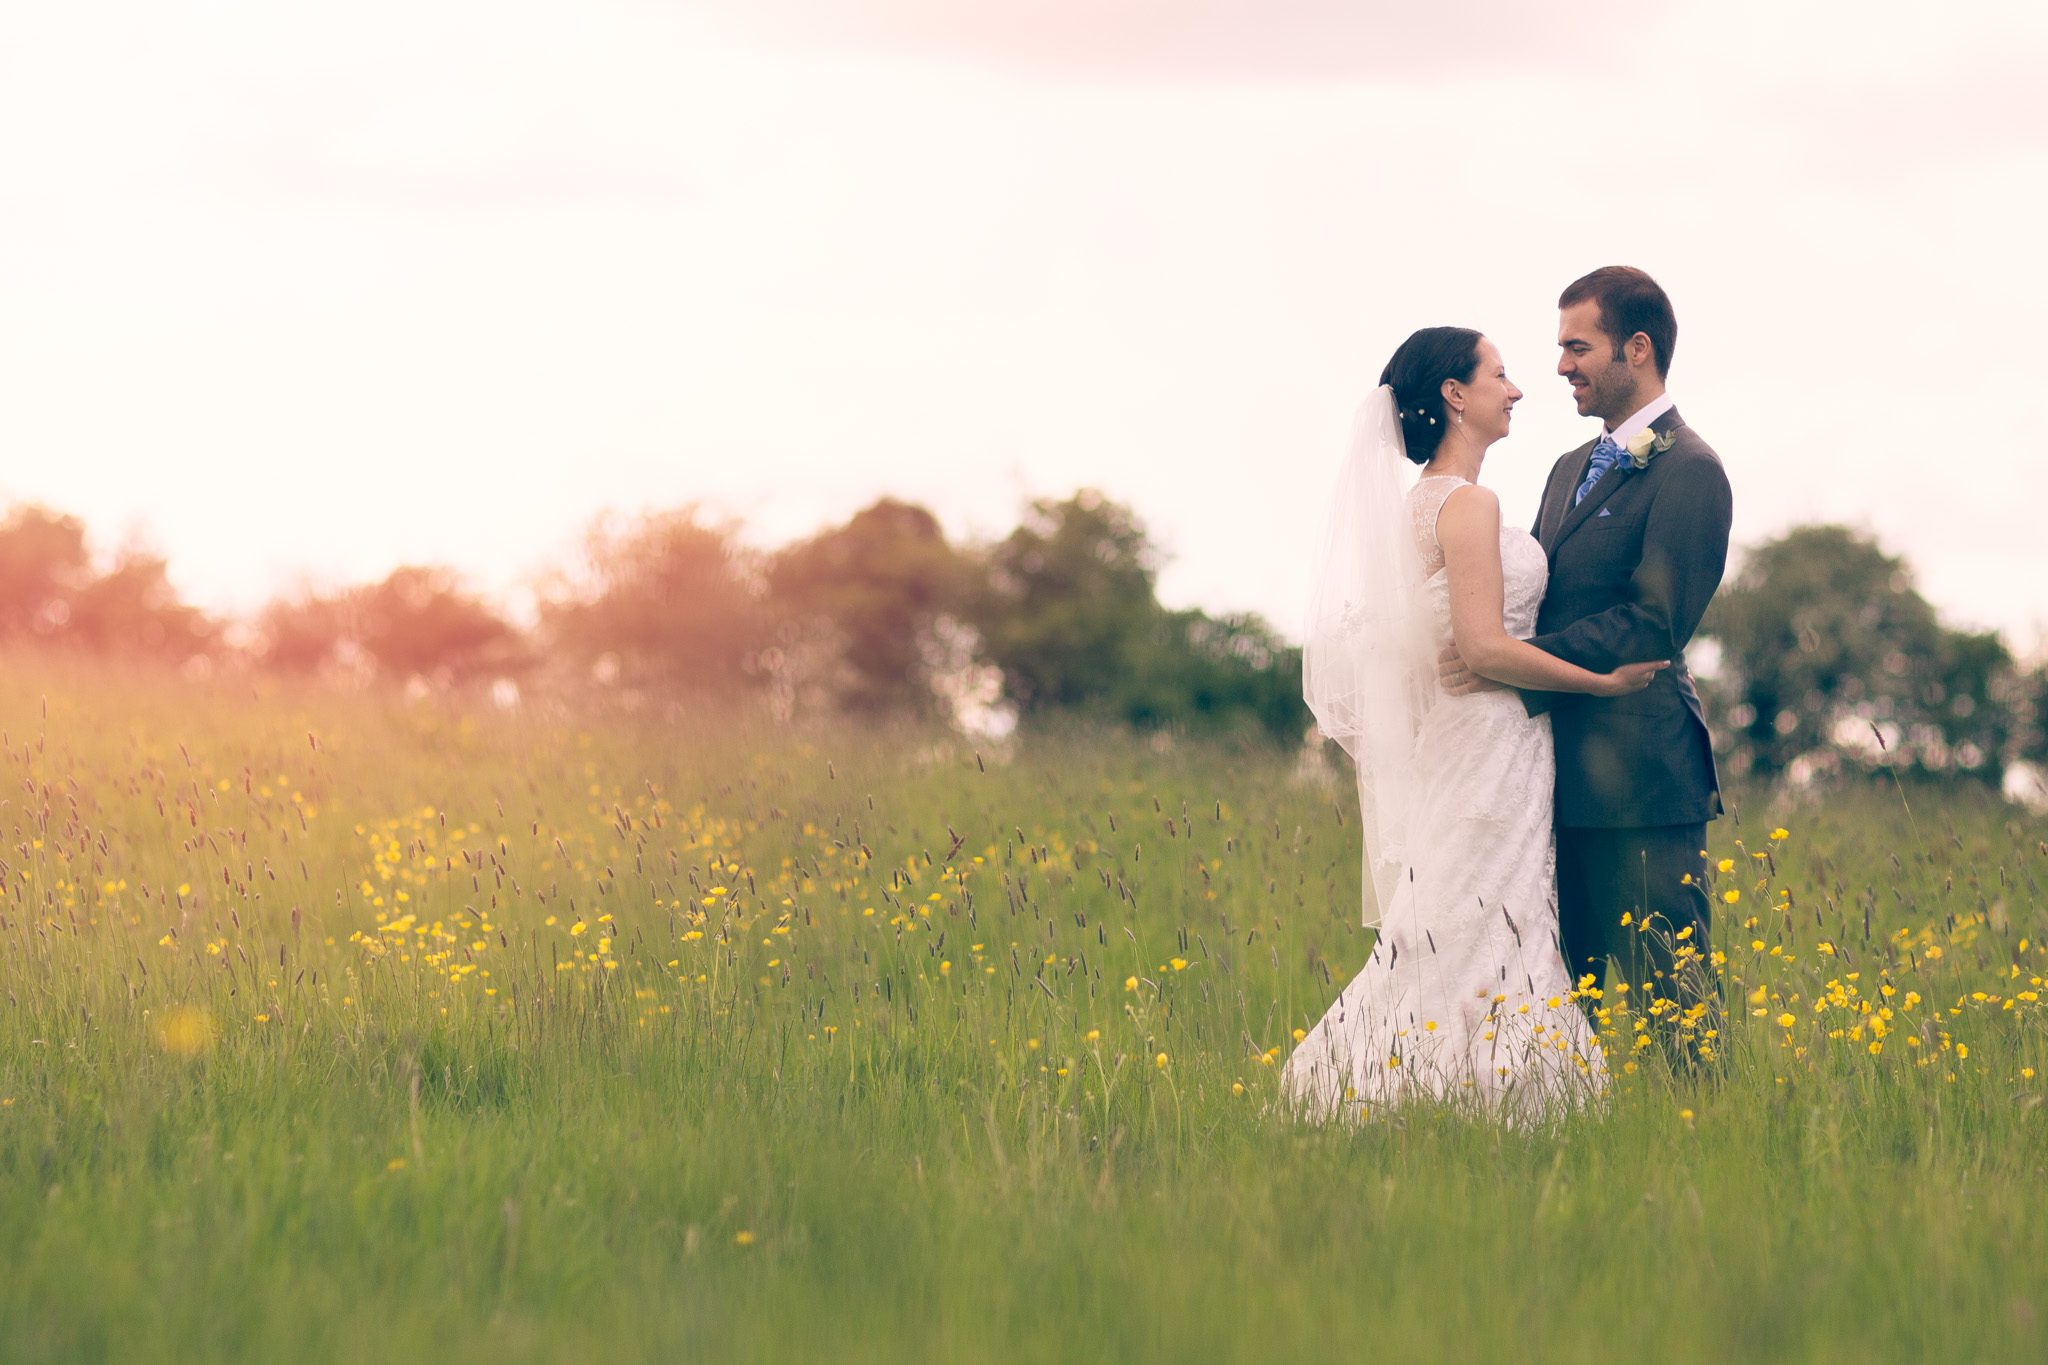 Mark_Barnes_Northern_Ireland_Wedding_Photography_Jack_and_Claire-29.jpg